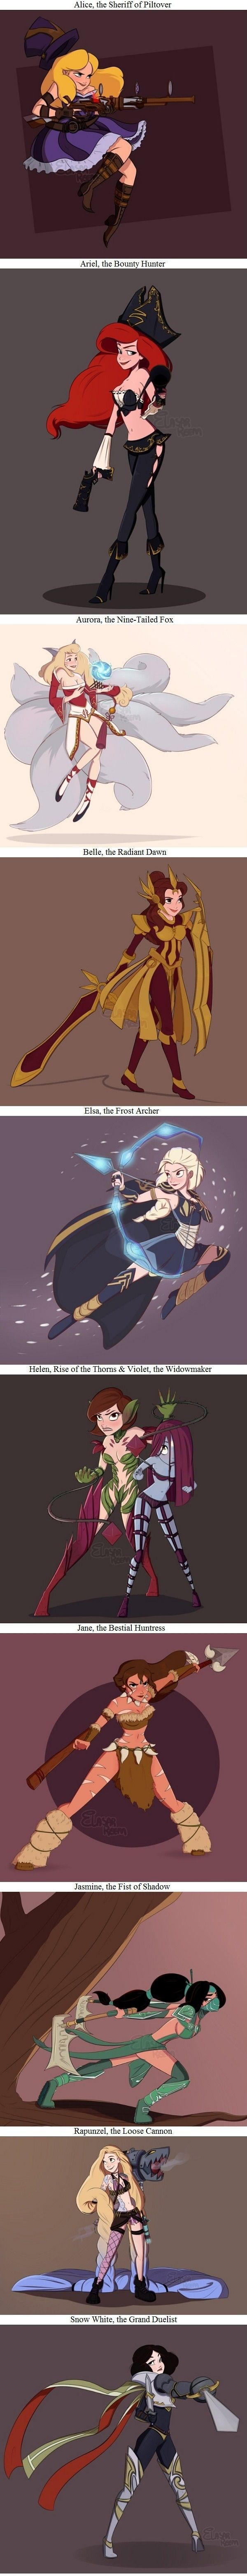 League of (Disney) ladies   disney princesses as league of legends champions characters. Alice in wonderland as Caitlyn, Ariel the little mermaid as Miss fortune, Aurora the Sleeping Beauty as Ahri, Belle as Leona, Else from frozen as Ashe, Helen and Violet as Zyra and Evelynn, Jane from tarzan as Nidalee, Jasmin as Akali, Rapunzel as Jinx, and Snow white as Fiora. Fan art #disneyFanArt